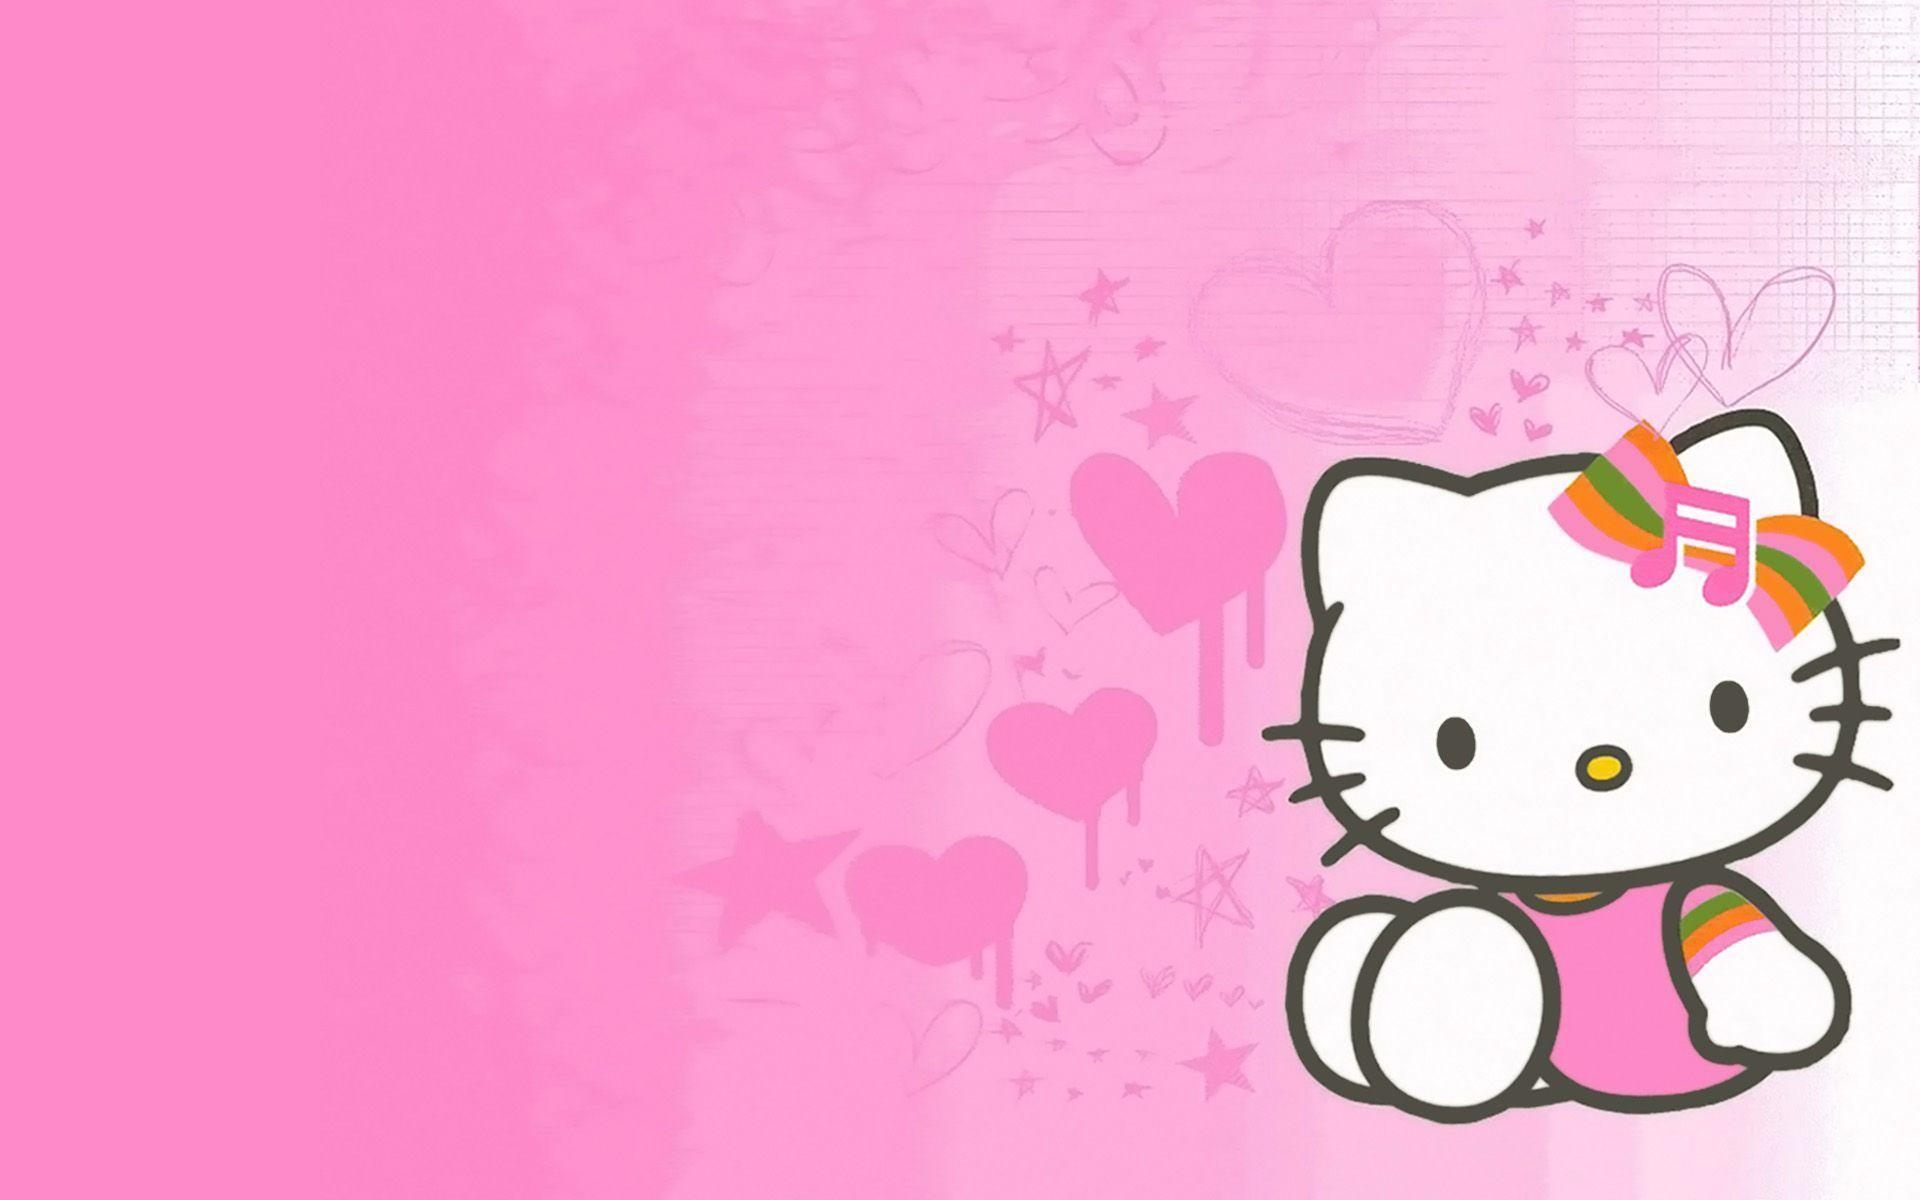 Hello Kitty Wallpapers And Screensavers - Wallpaper Cave